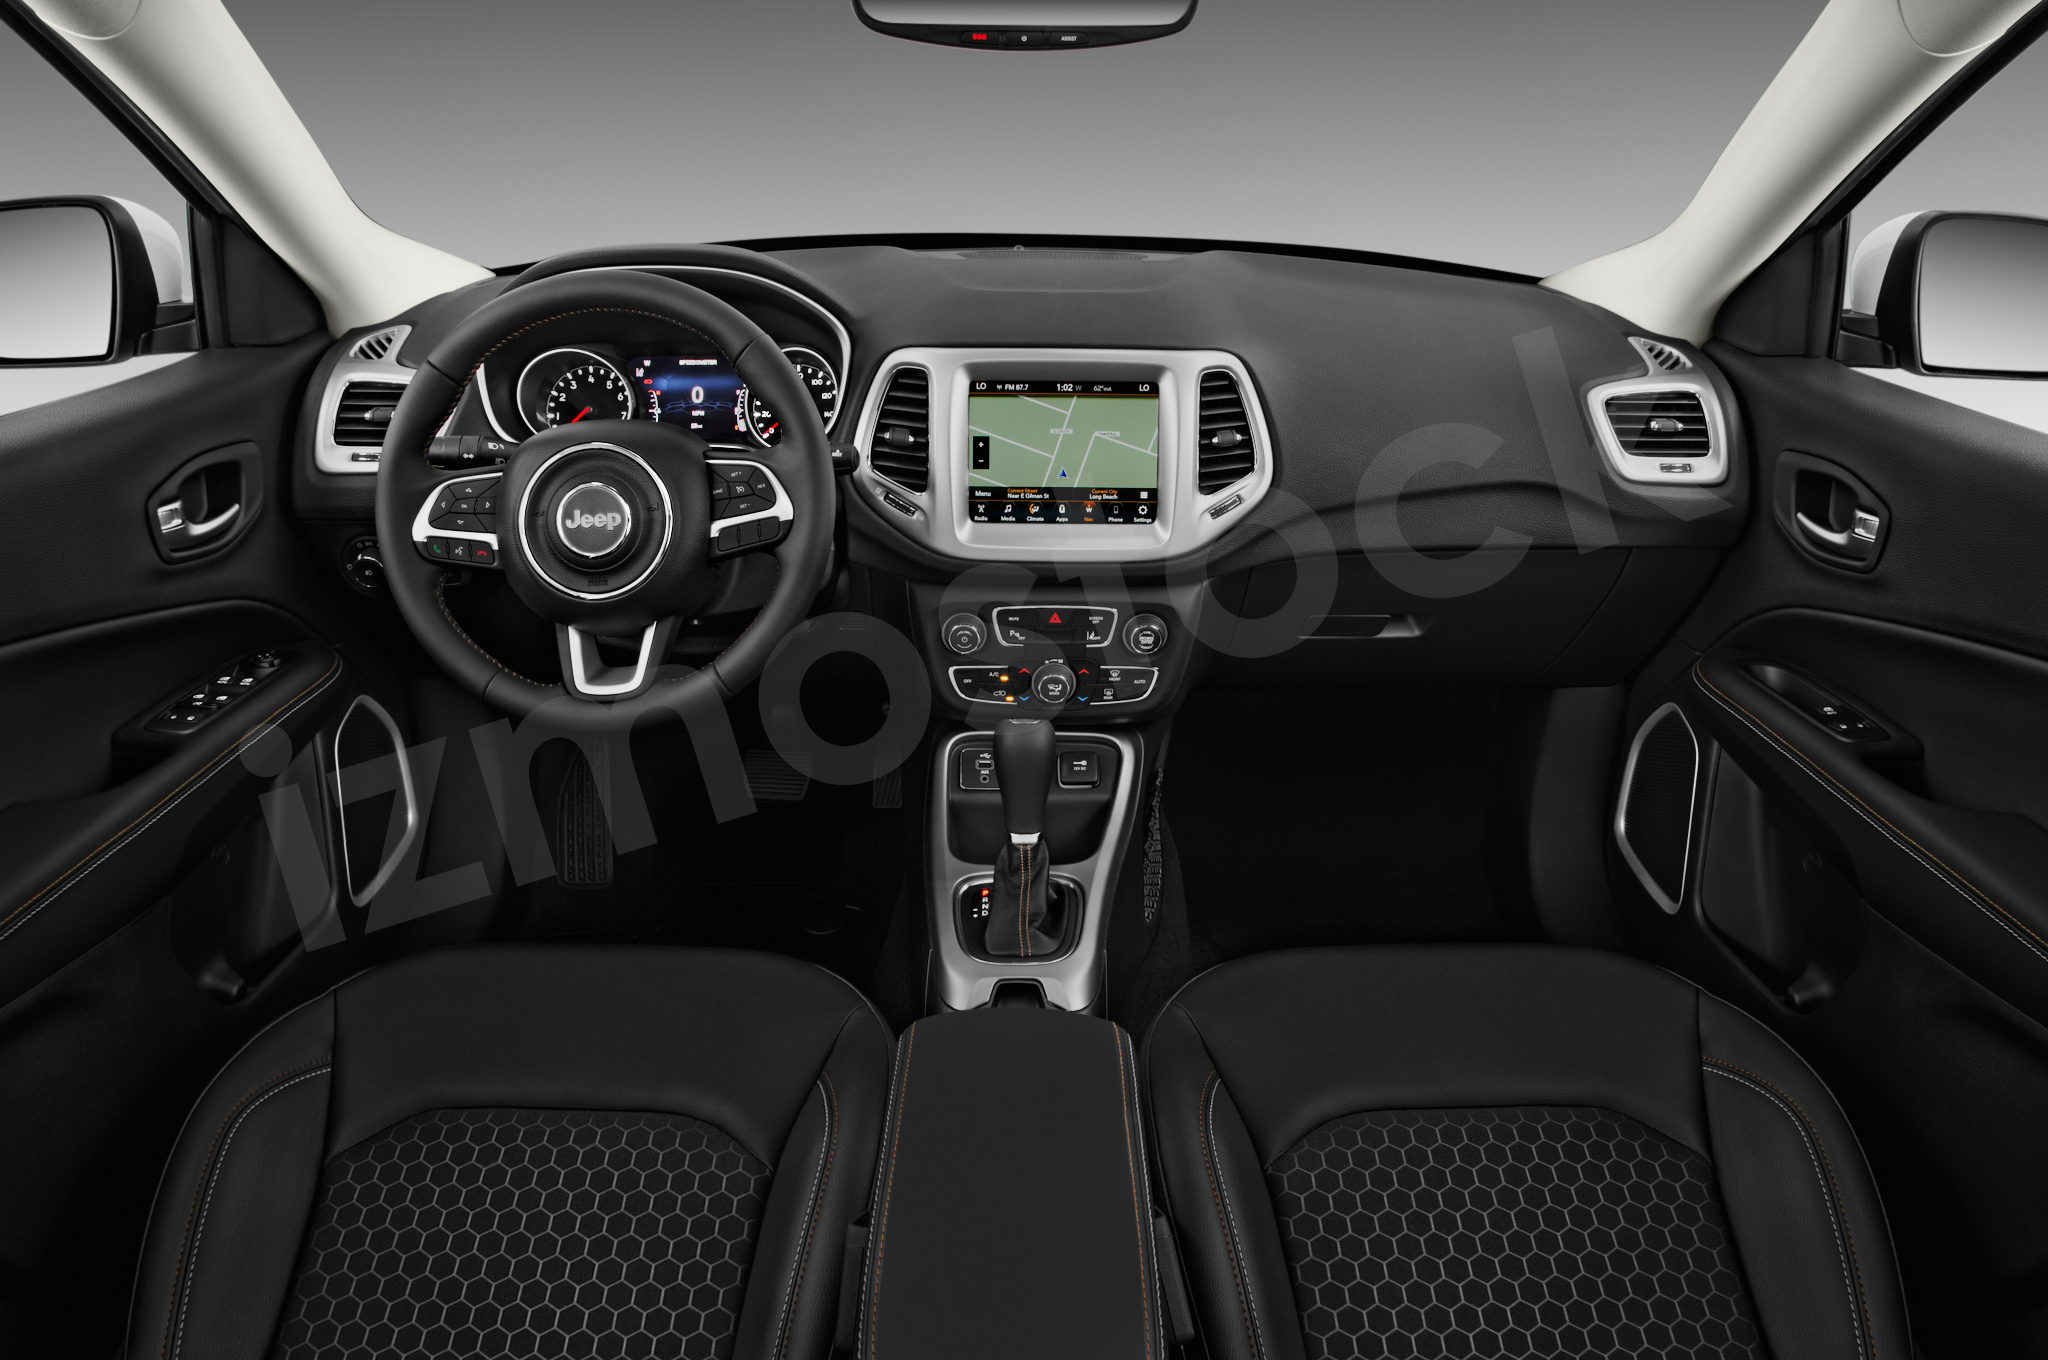 jeep_17compass2a_dashboard